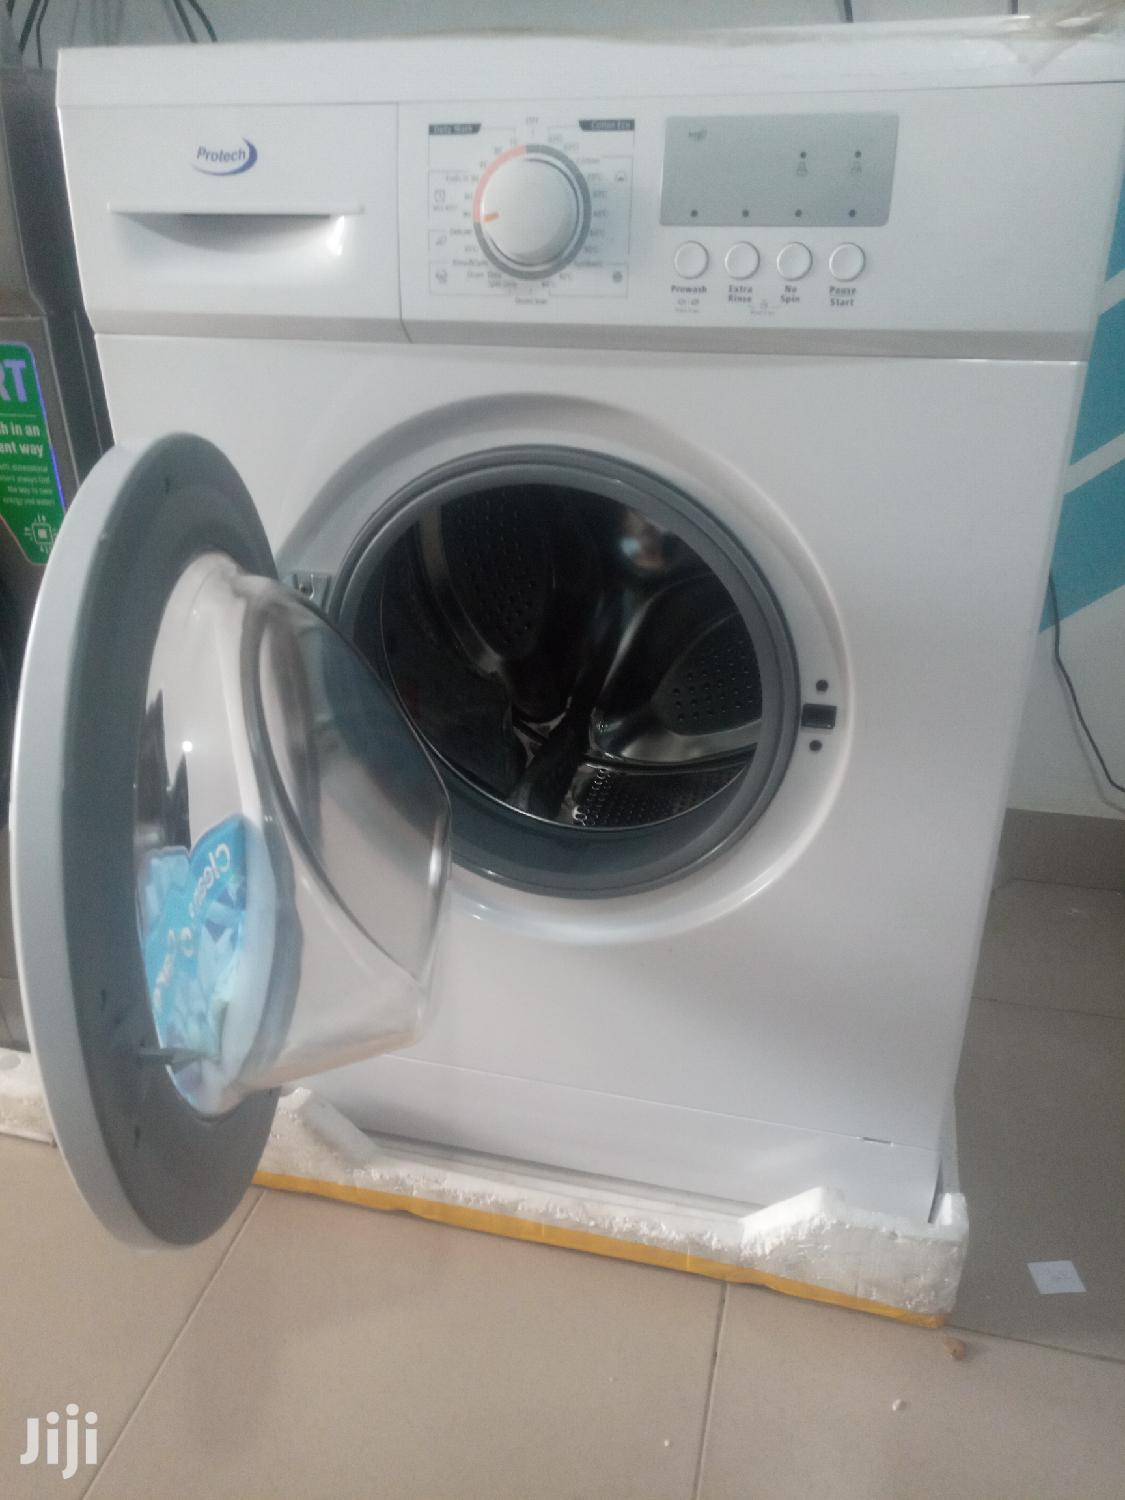 Protech 6KG Front Load Washing Machine   Home Appliances for sale in Achimota, Greater Accra, Ghana